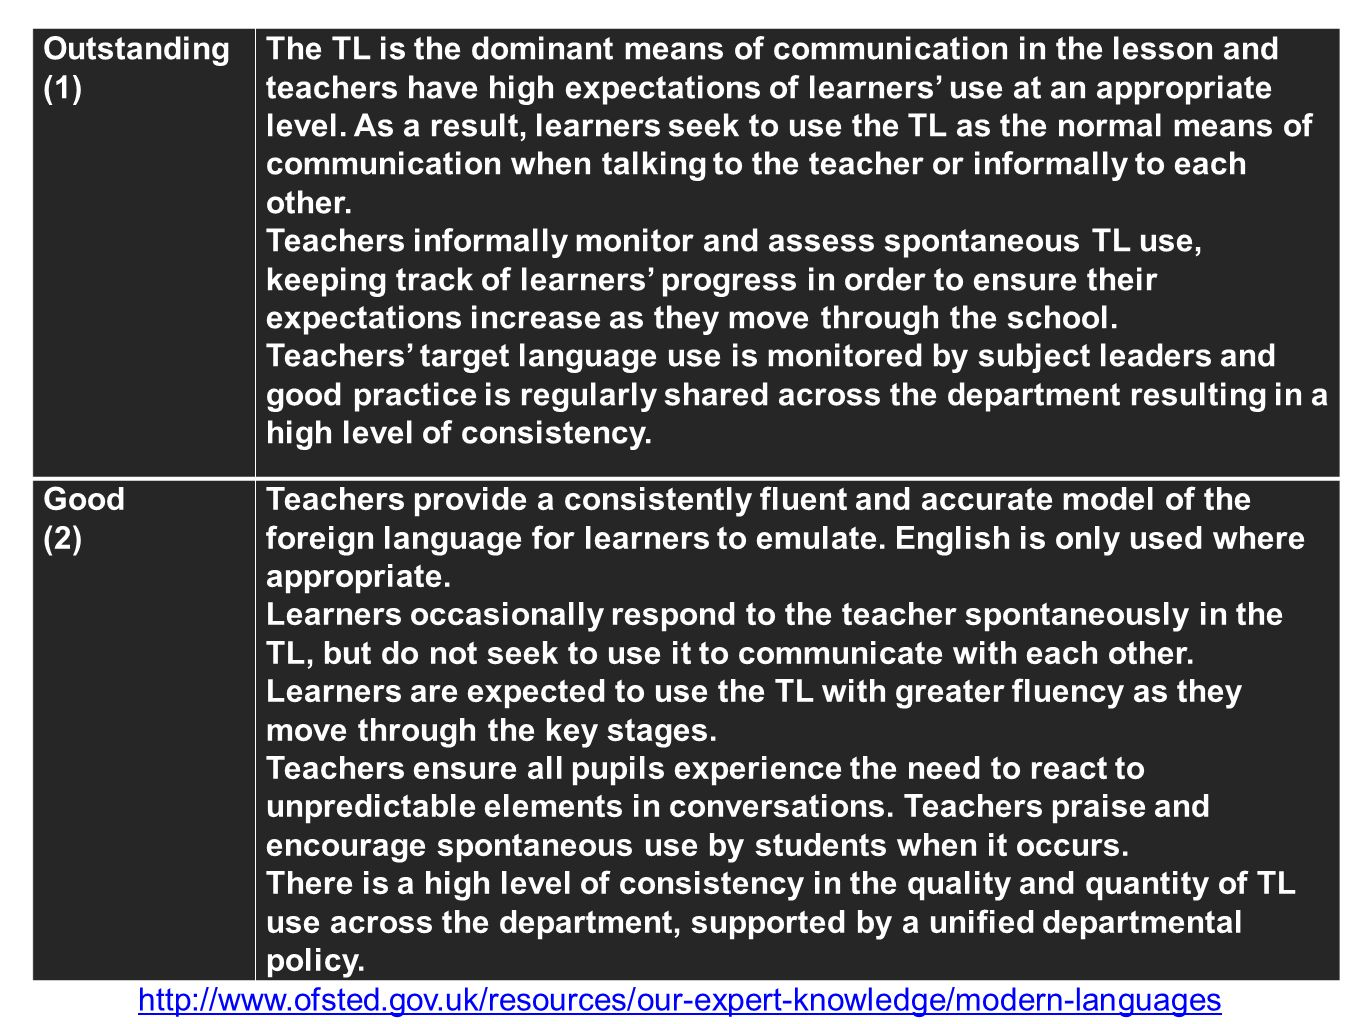 Outstanding (1) The TL is the dominant means of communication in the lesson and teachers have high expectations of learners use at an appropriate leve